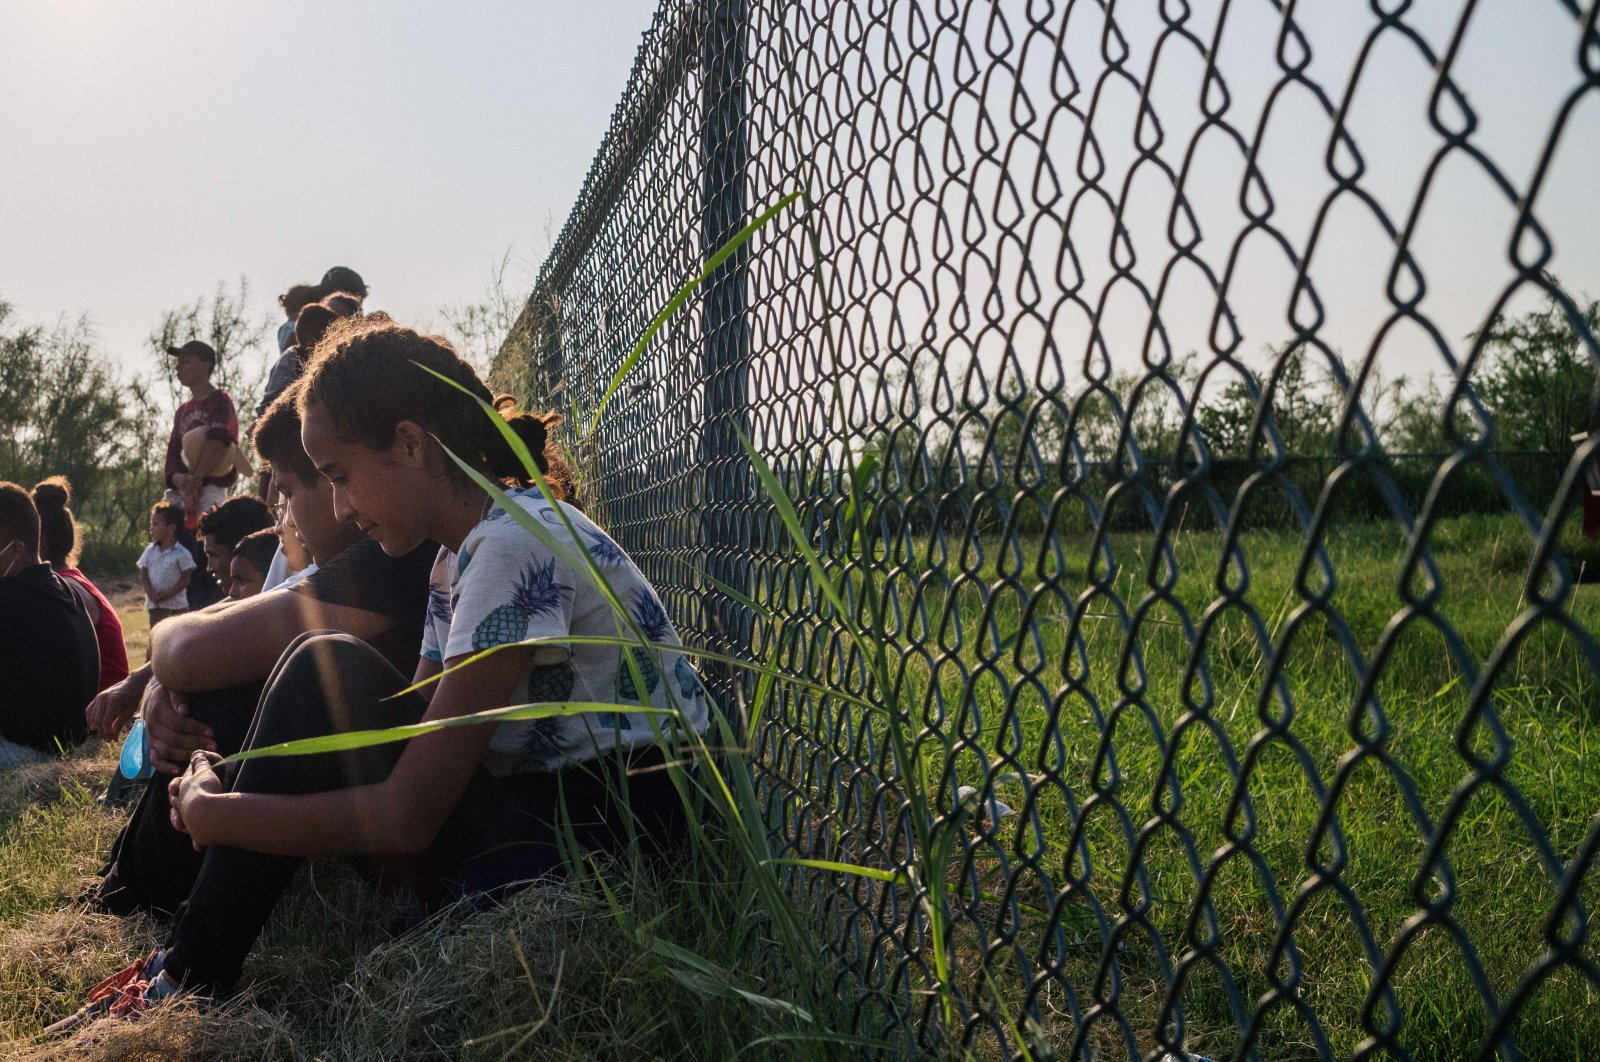 Immigrants from Honduras wait to be accounted for and taken to a border patrol processing facility after crossing the Rio Grande into the U.S., in La Joya, Texas, U.S., June 21, 2021. (AFP Photo)